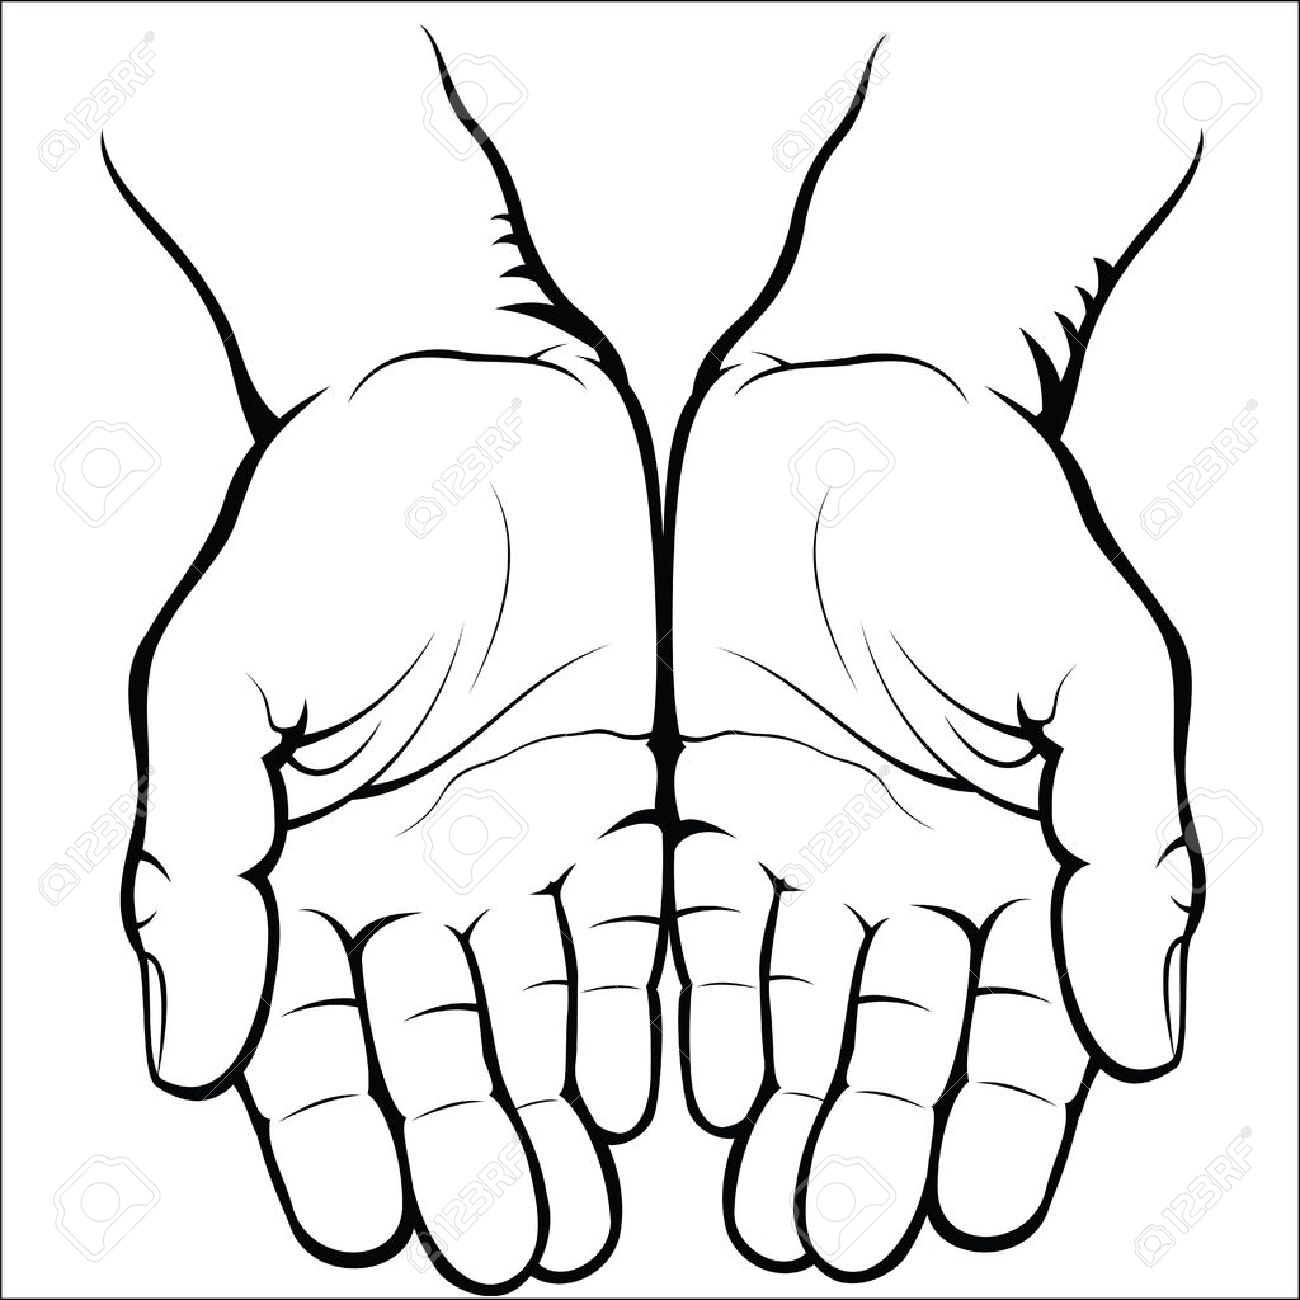 1300x1300 Open Hands Stock Photos. Royalty Free Business Images